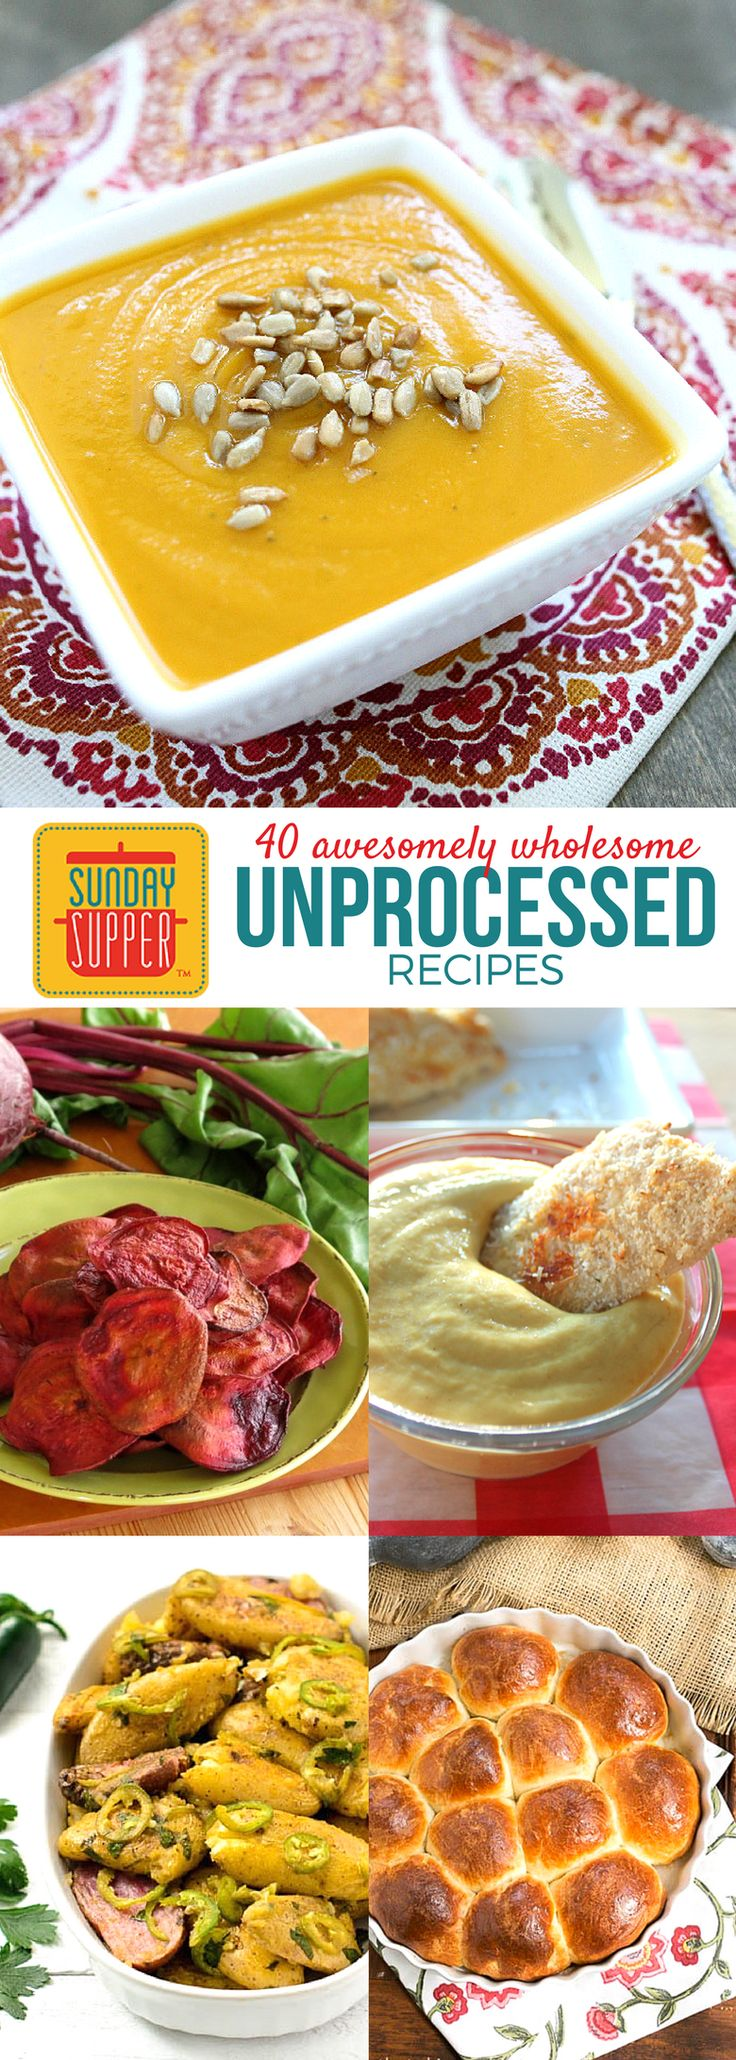 Are you ready to ramp up the amount of unprocessed foods you eat?Join us around the family table as we share unprocessed recipes for #SundaySupper